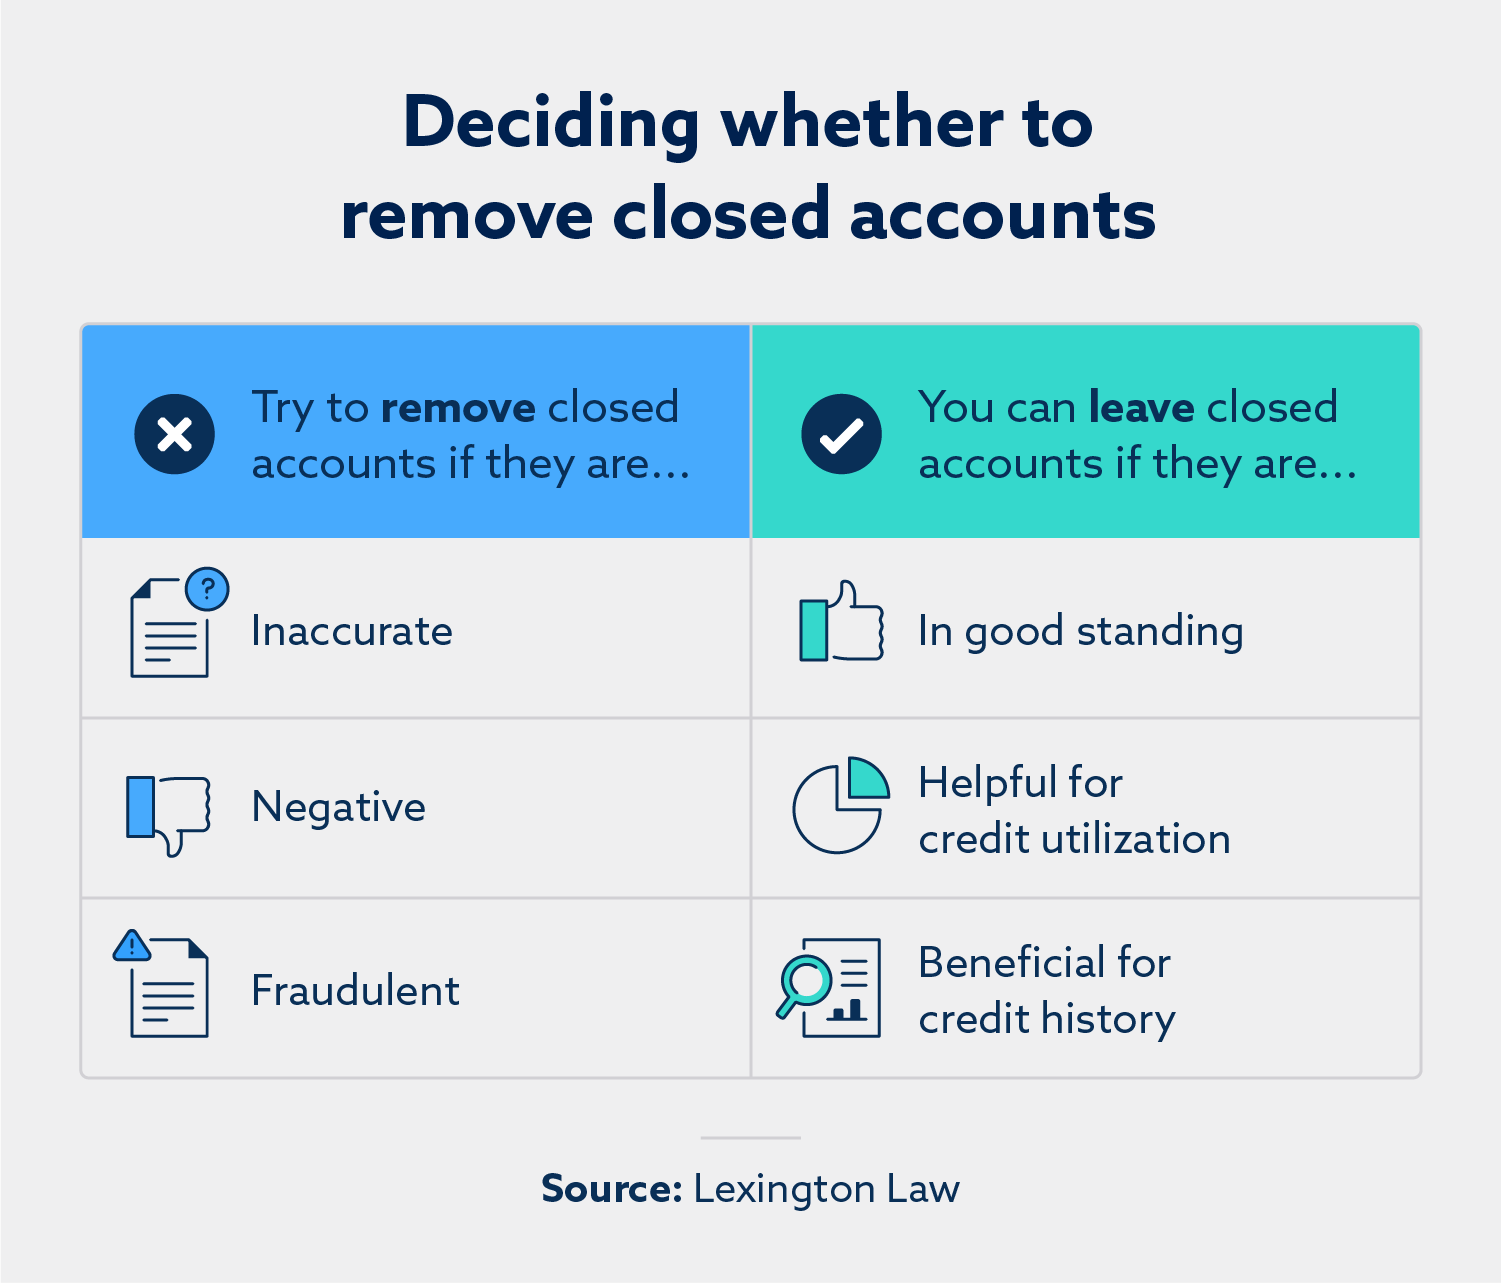 Deciding whether to remove closed accounts. Try to remove close accounts if they are: inaccurate, negative, fraudulent. You can leave closed accounts if they are: in good standing, helpful for credit utilization, beneficial for credit history.